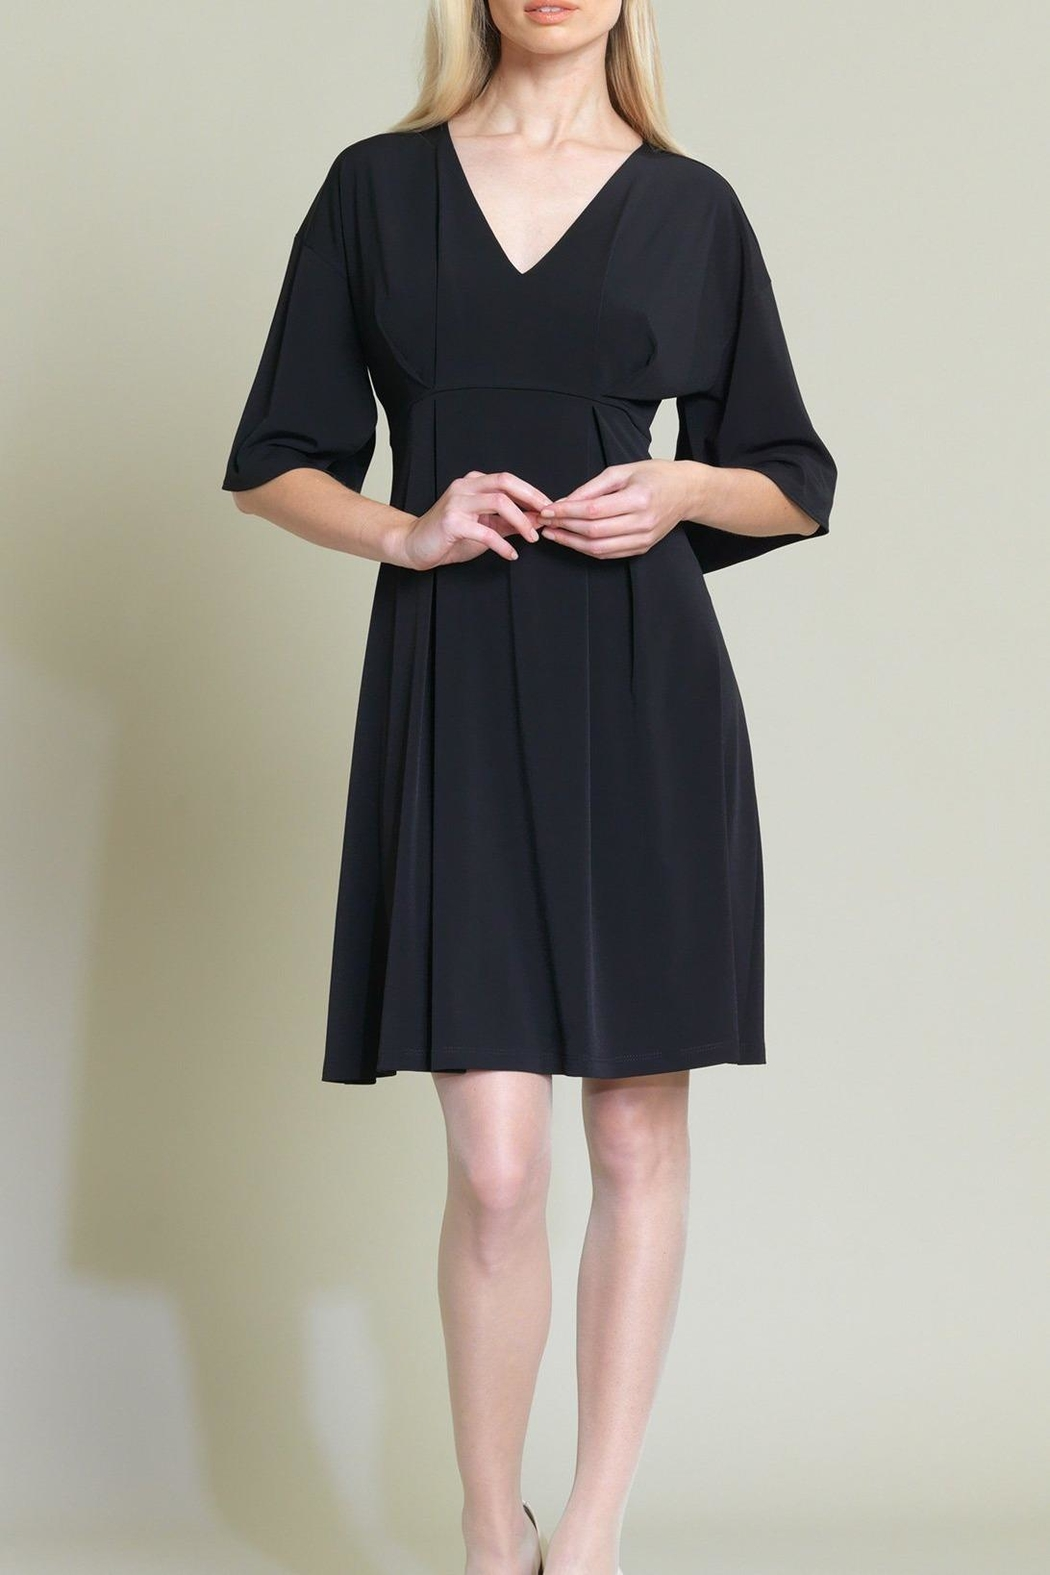 Clara Sunwoo Empire Pinched Dress - Side Cropped Image